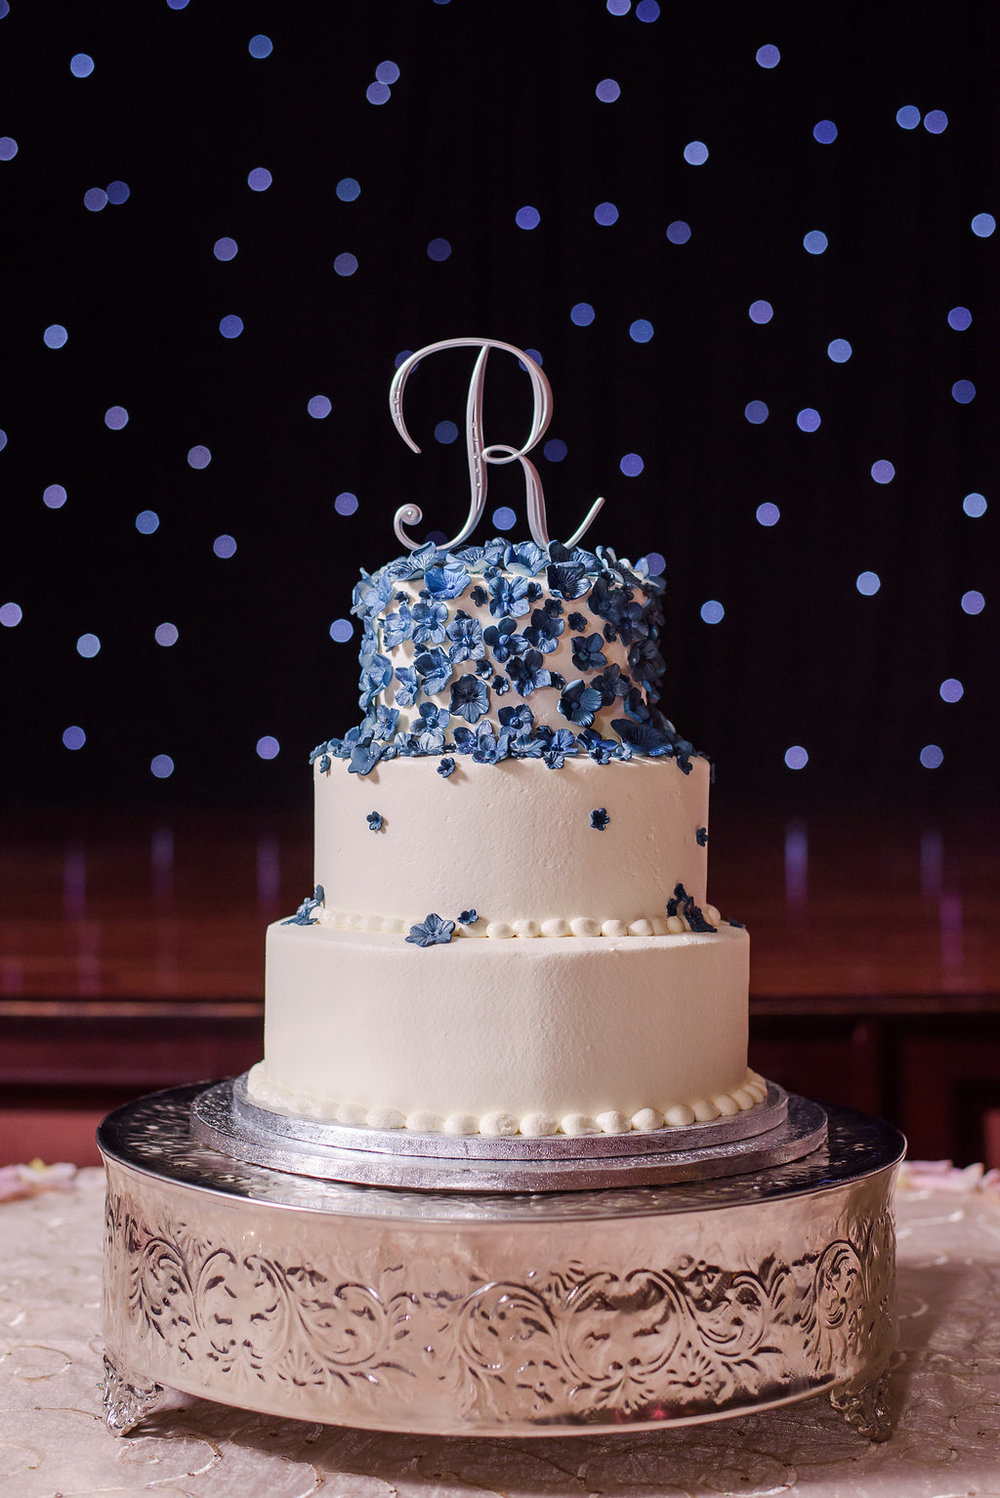 Blue sugared flowers cascaded down the simple and elegant three tier cake.